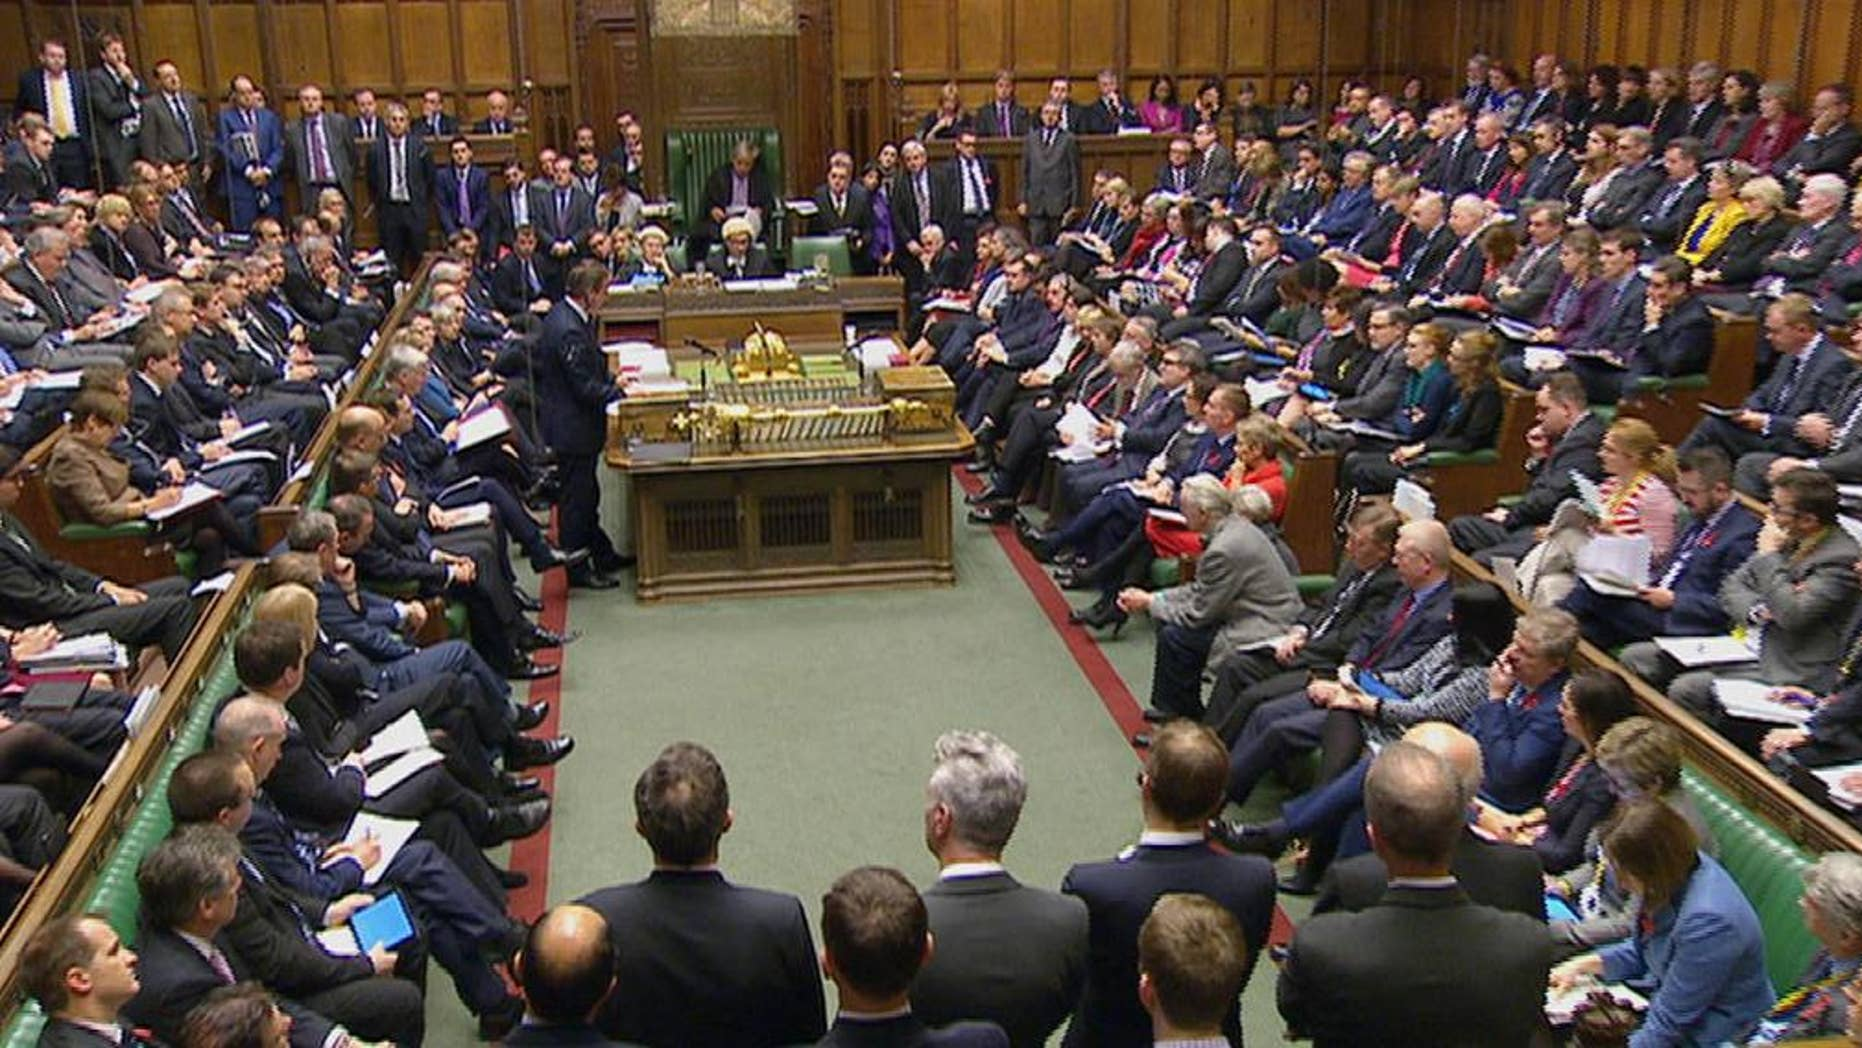 British Prime Minister David Cameron, standing centre left, talks to lawmakers inside the House of Commons in London during a debate on launching airstrikes against Islamic State extremists inside Syria, Wednesday, Dec. 2, 2015. The parliamentary vote is expected Wednesday evening.  Opposition Labour Party leader, Jeremy Corbyn, looks at papers sitting centre right opposite Cameron, who opposes any expansion of Britain's military role. (Parliamentary Recording Unit via AP Video) TV OUT - NO ARCHIVE